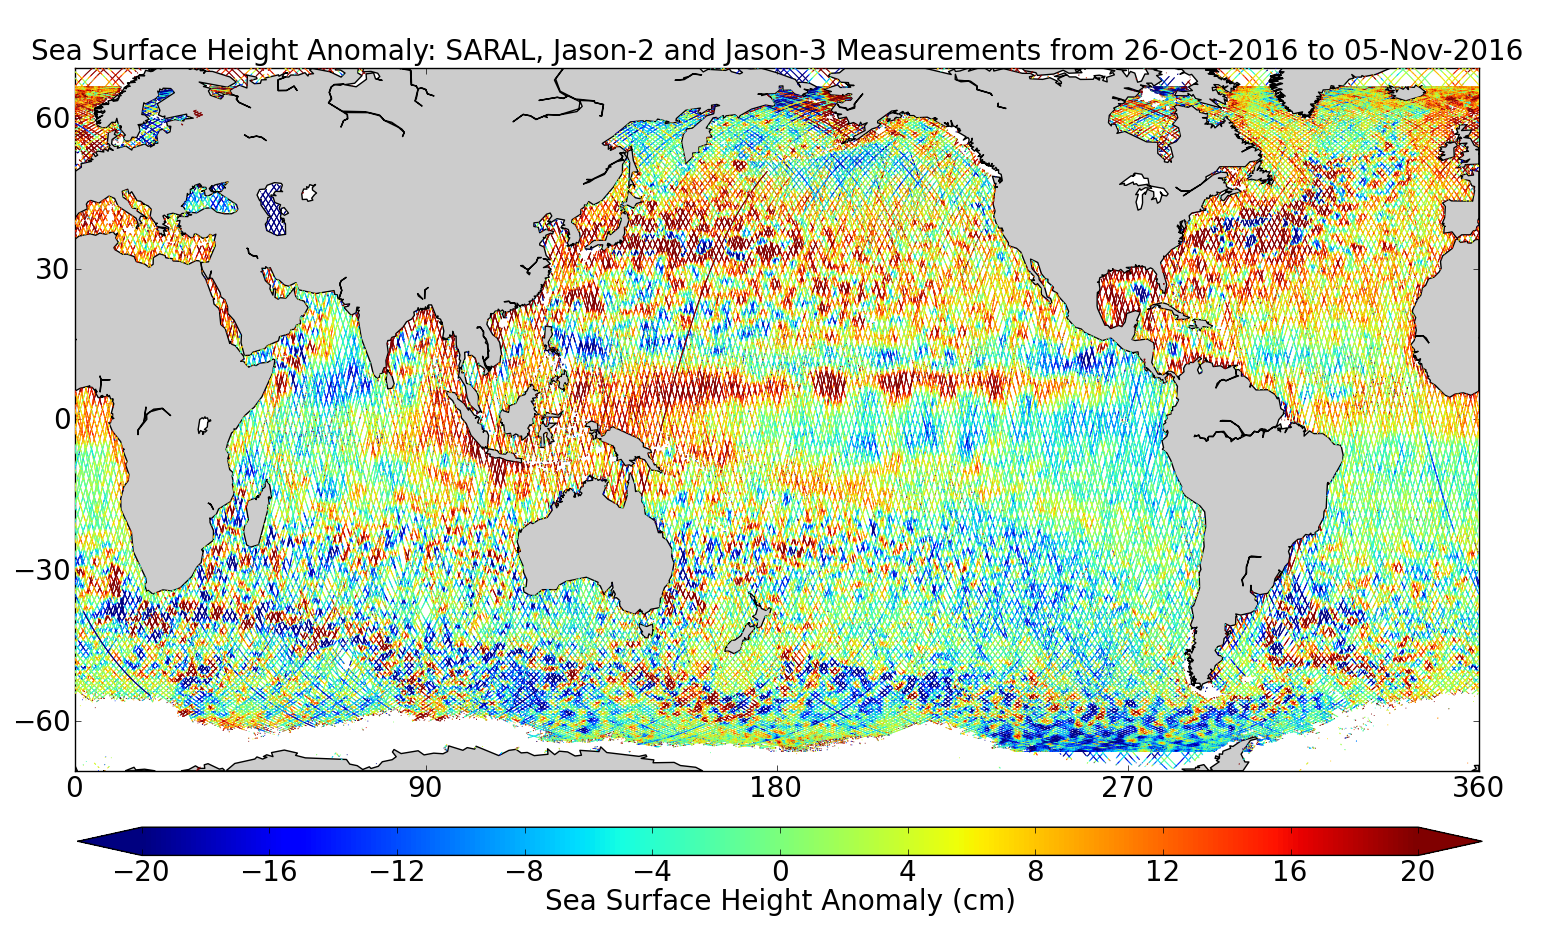 Sea Surface Height Anomaly: SARAL, Jason-2 and Jason-3 Measurements from 26-Oct-2016 to 05-Nov-2016